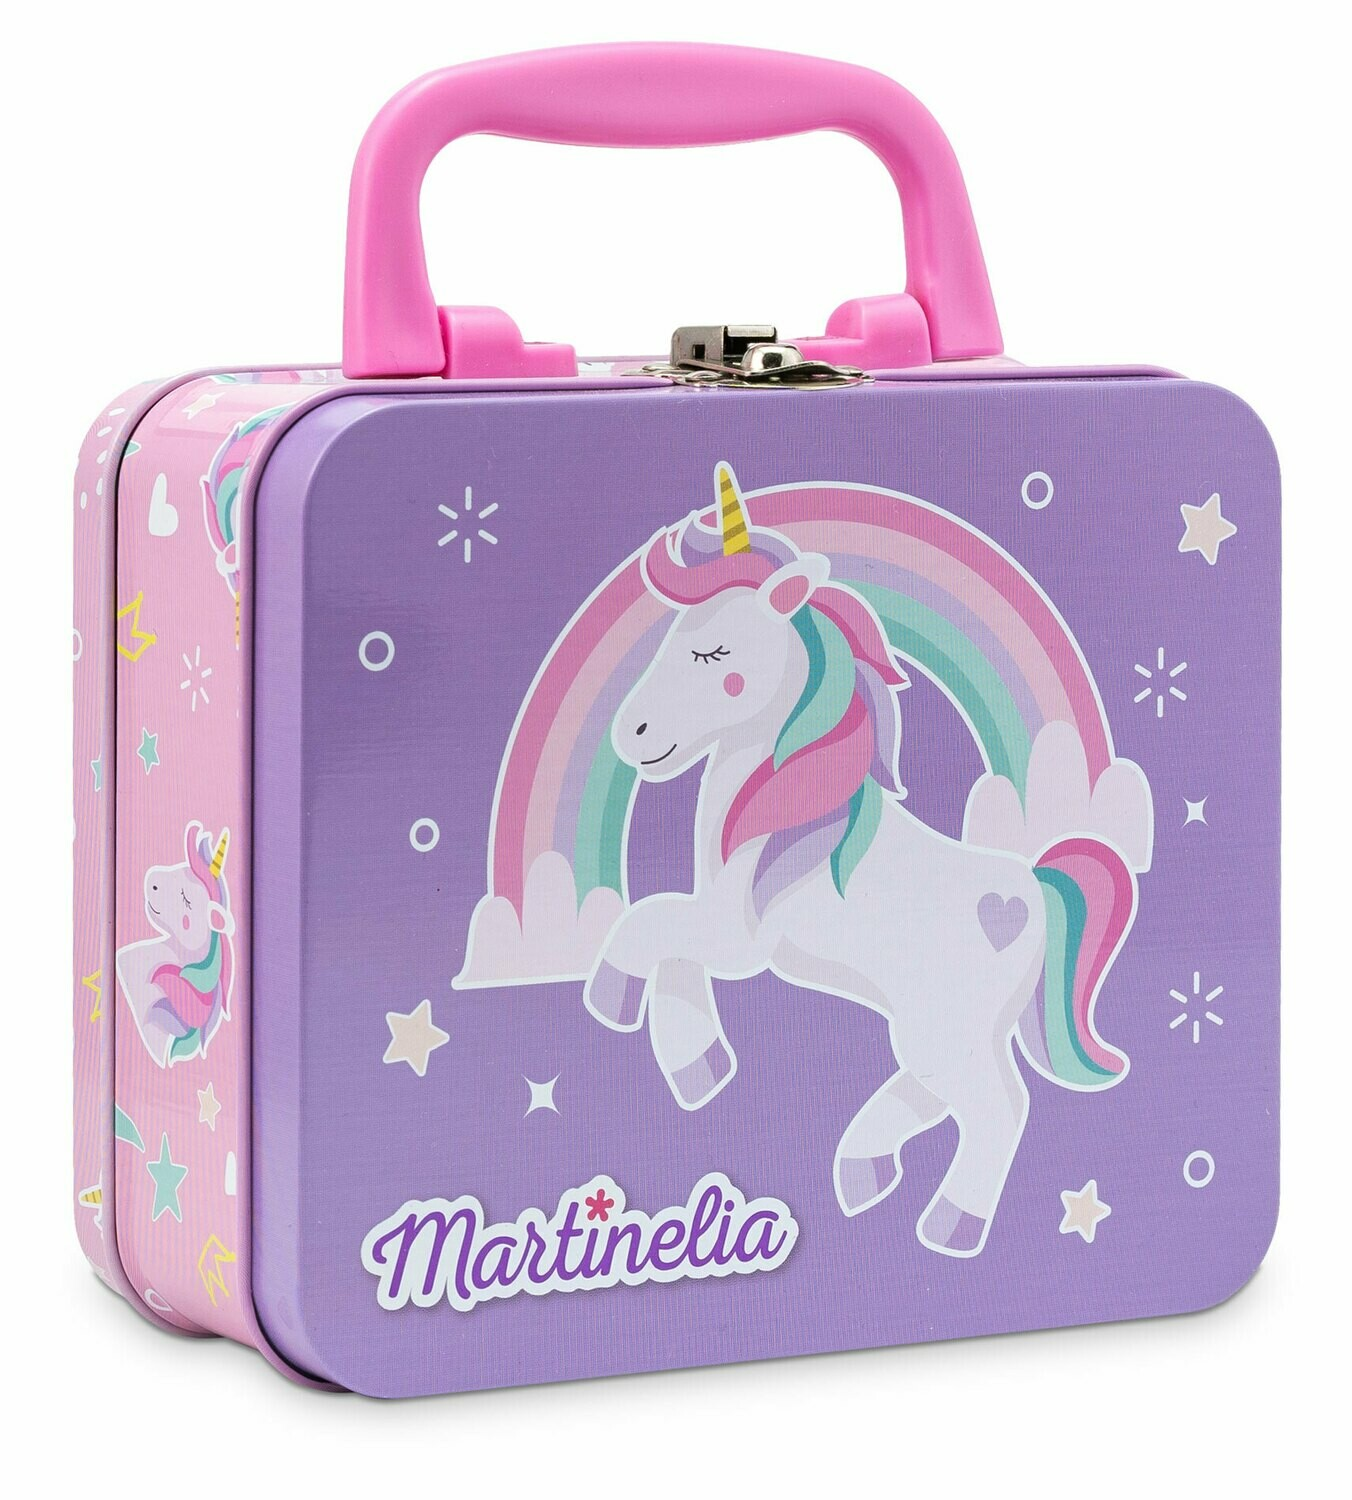 Martinelia Παιδικό Σετ Unicorn Dreams Medium Tin Case